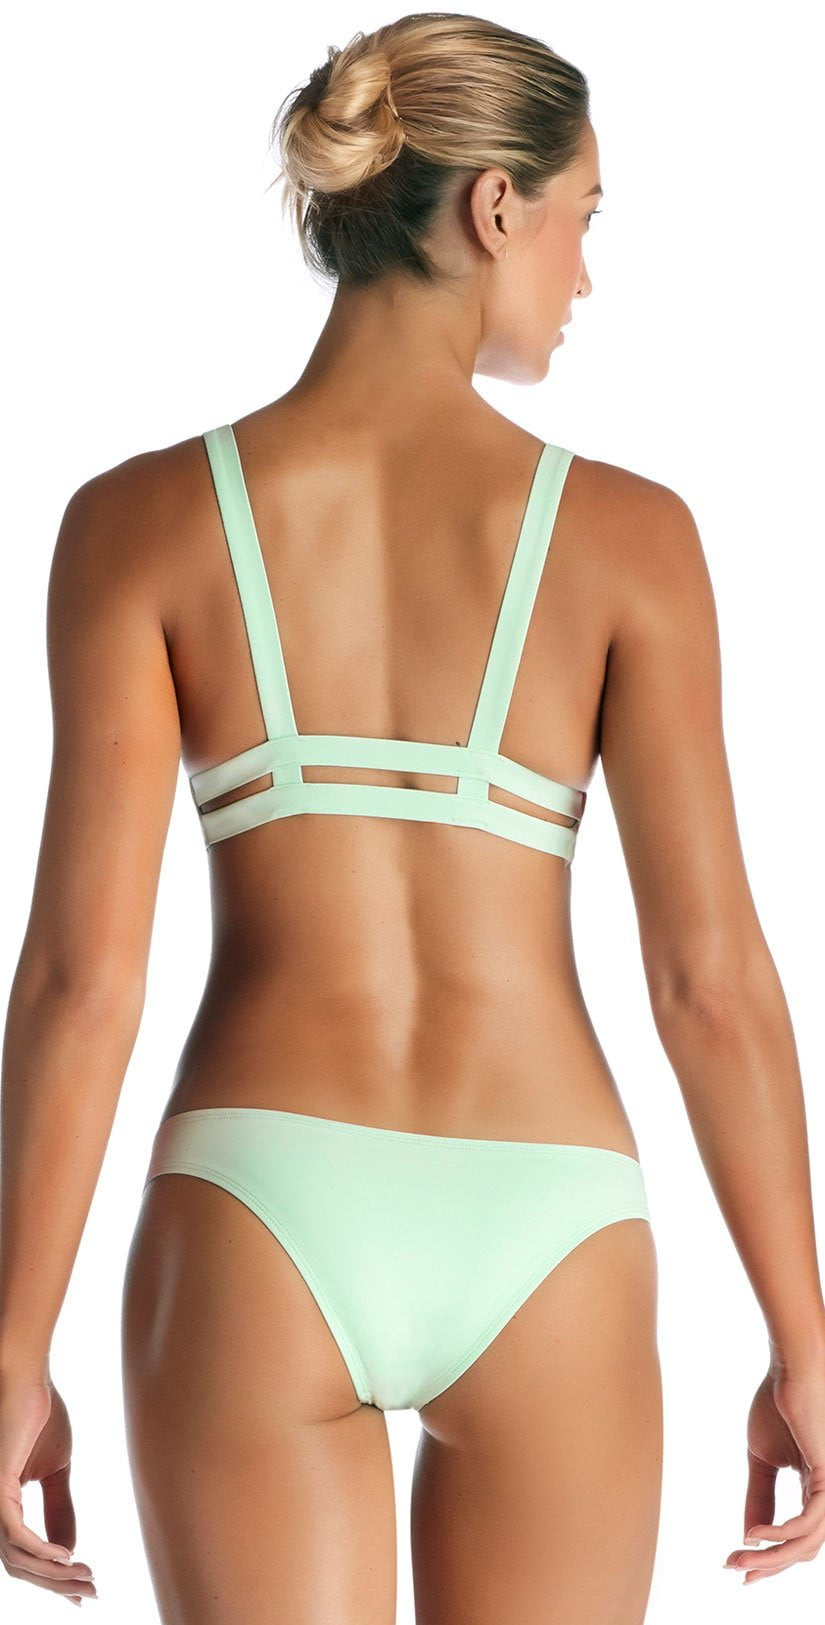 Vitamin A Neutra EcoLux Bikini Bottom in Glacier 42B GLE: